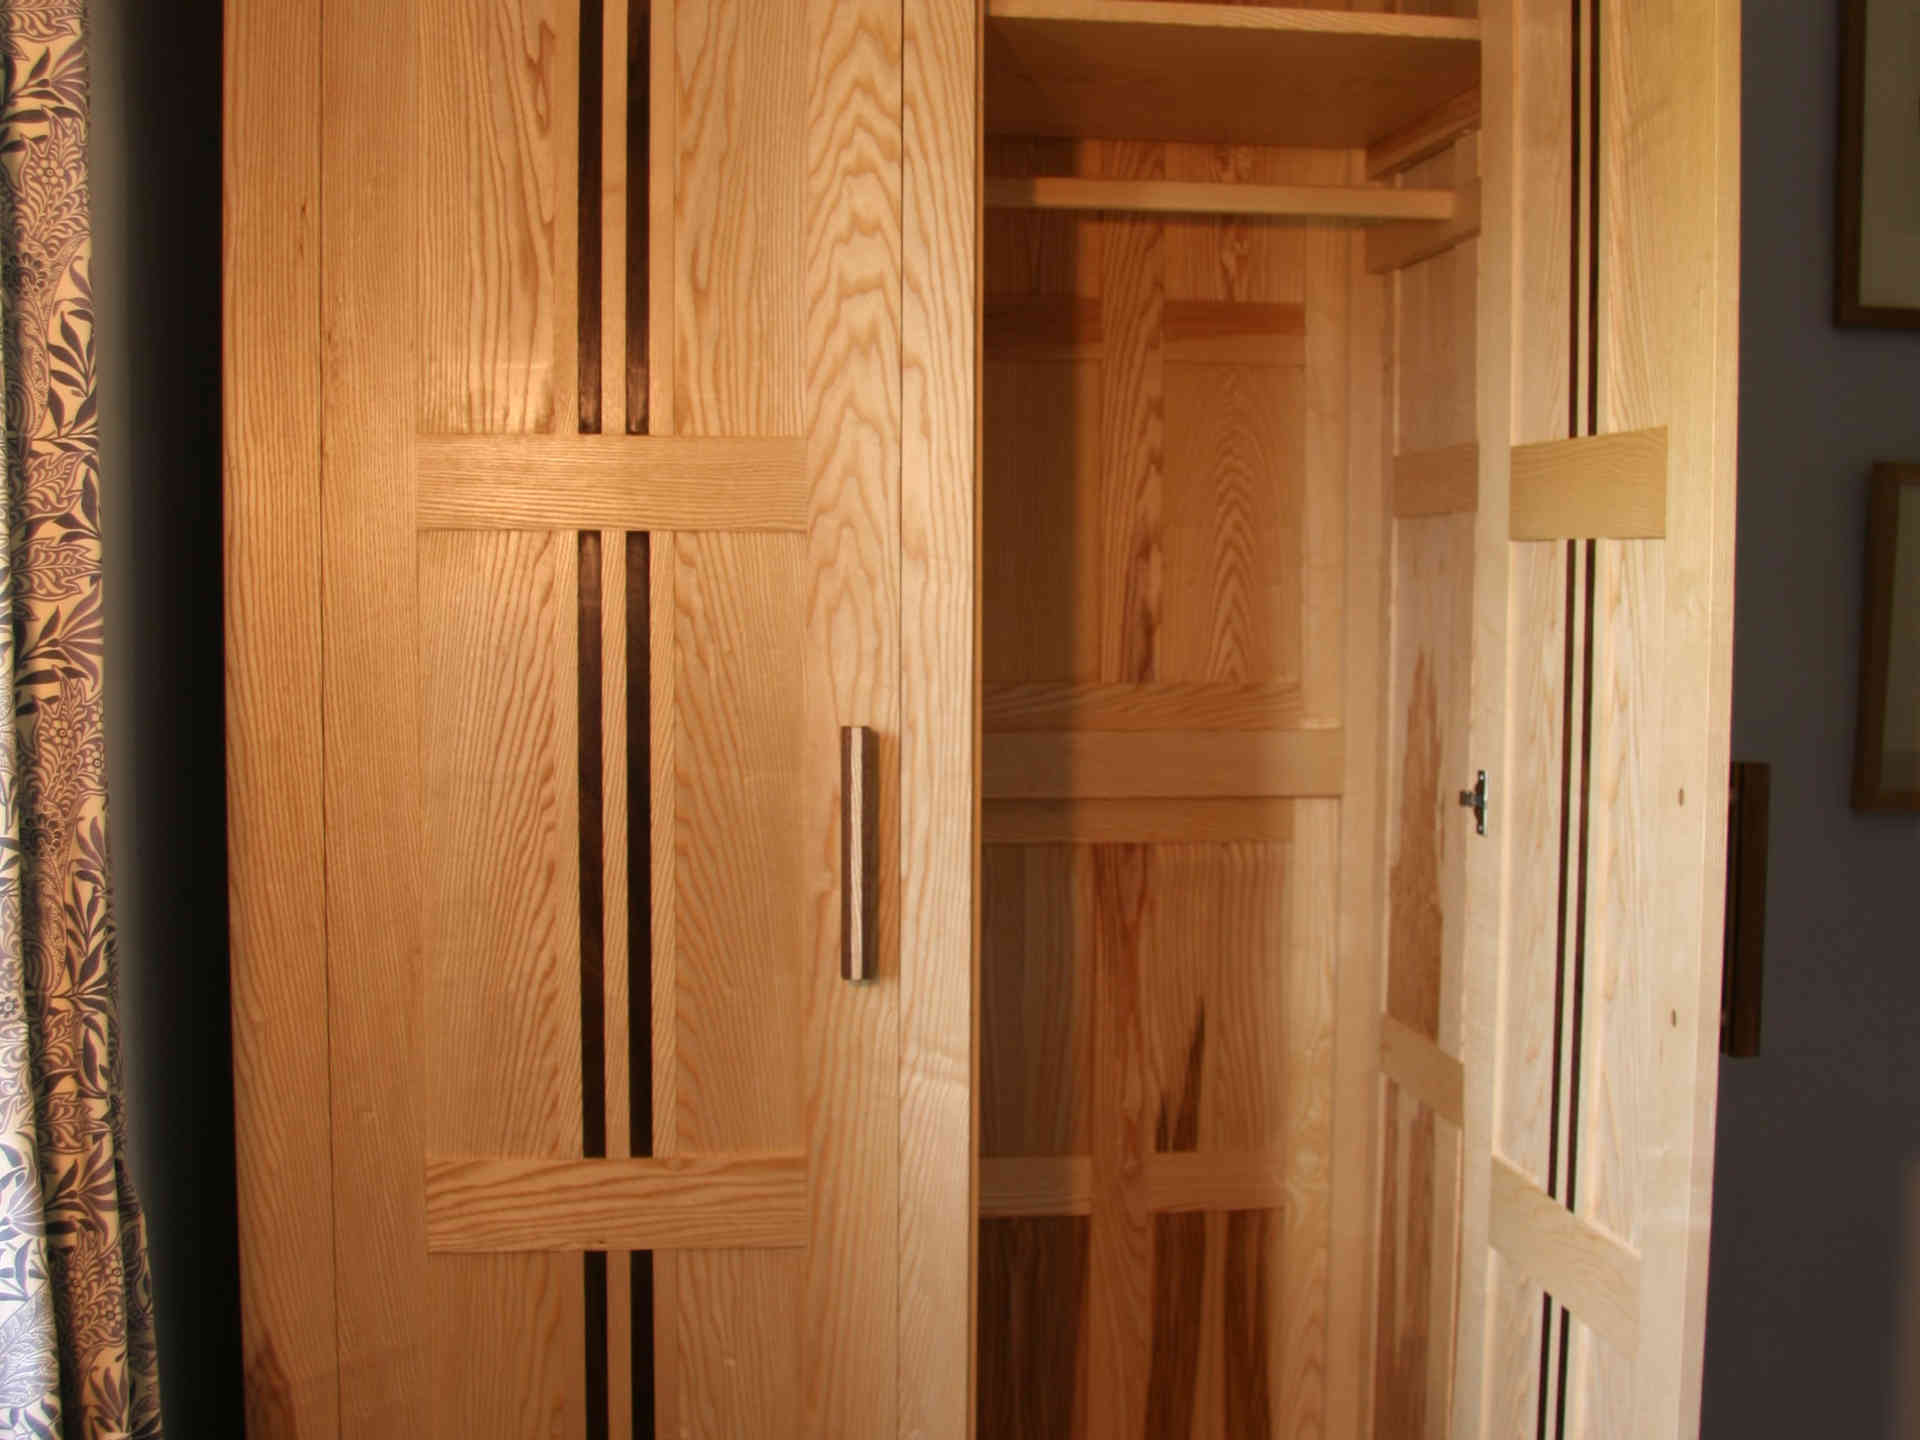 Ash and Walnut wardrobe